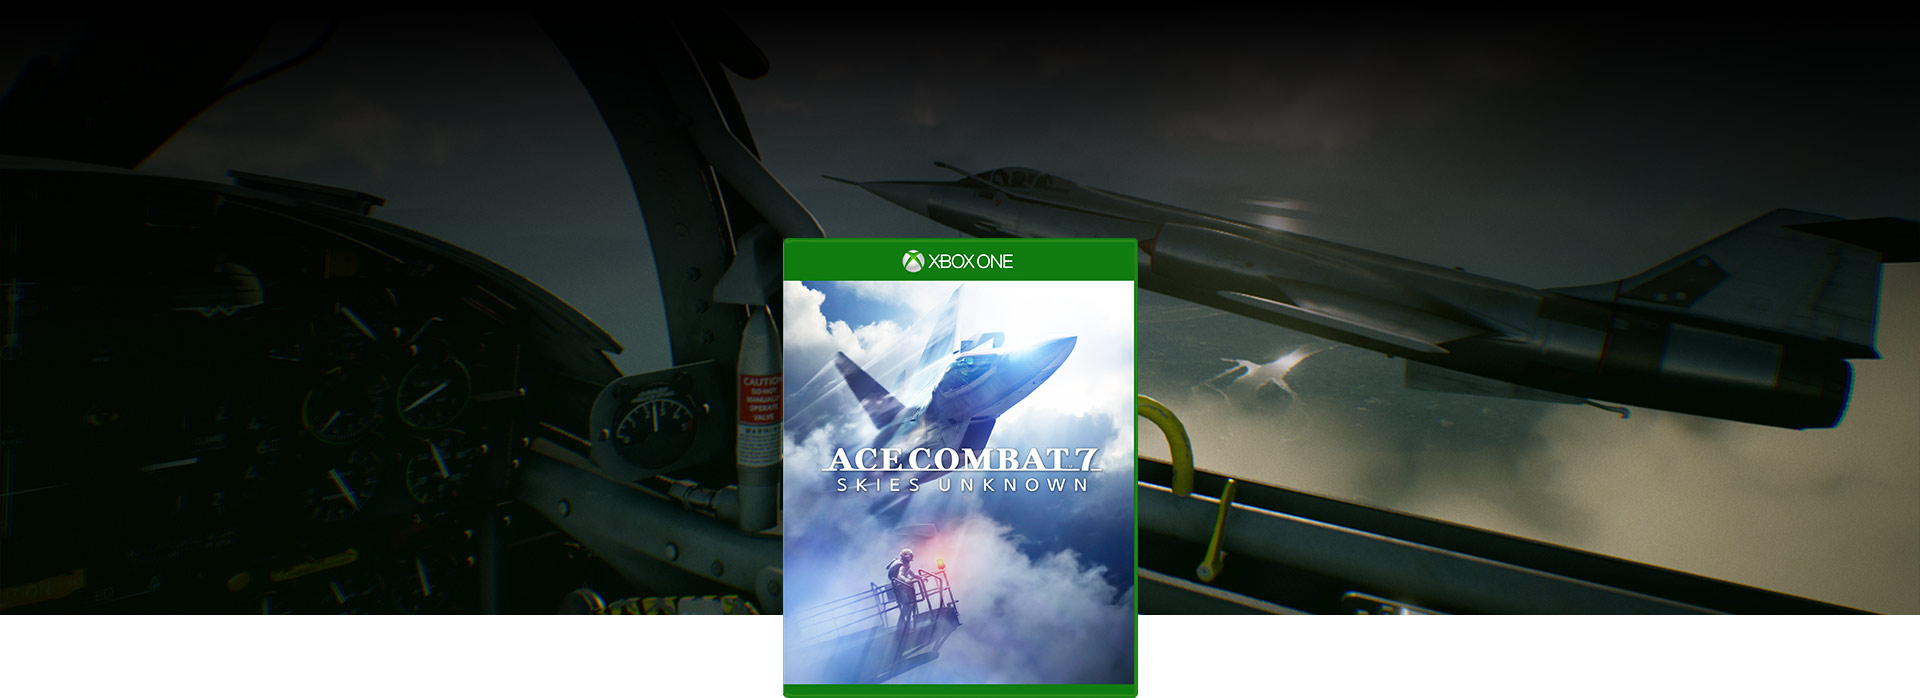 Two jets side by side behind the Ace Combat 7 game box